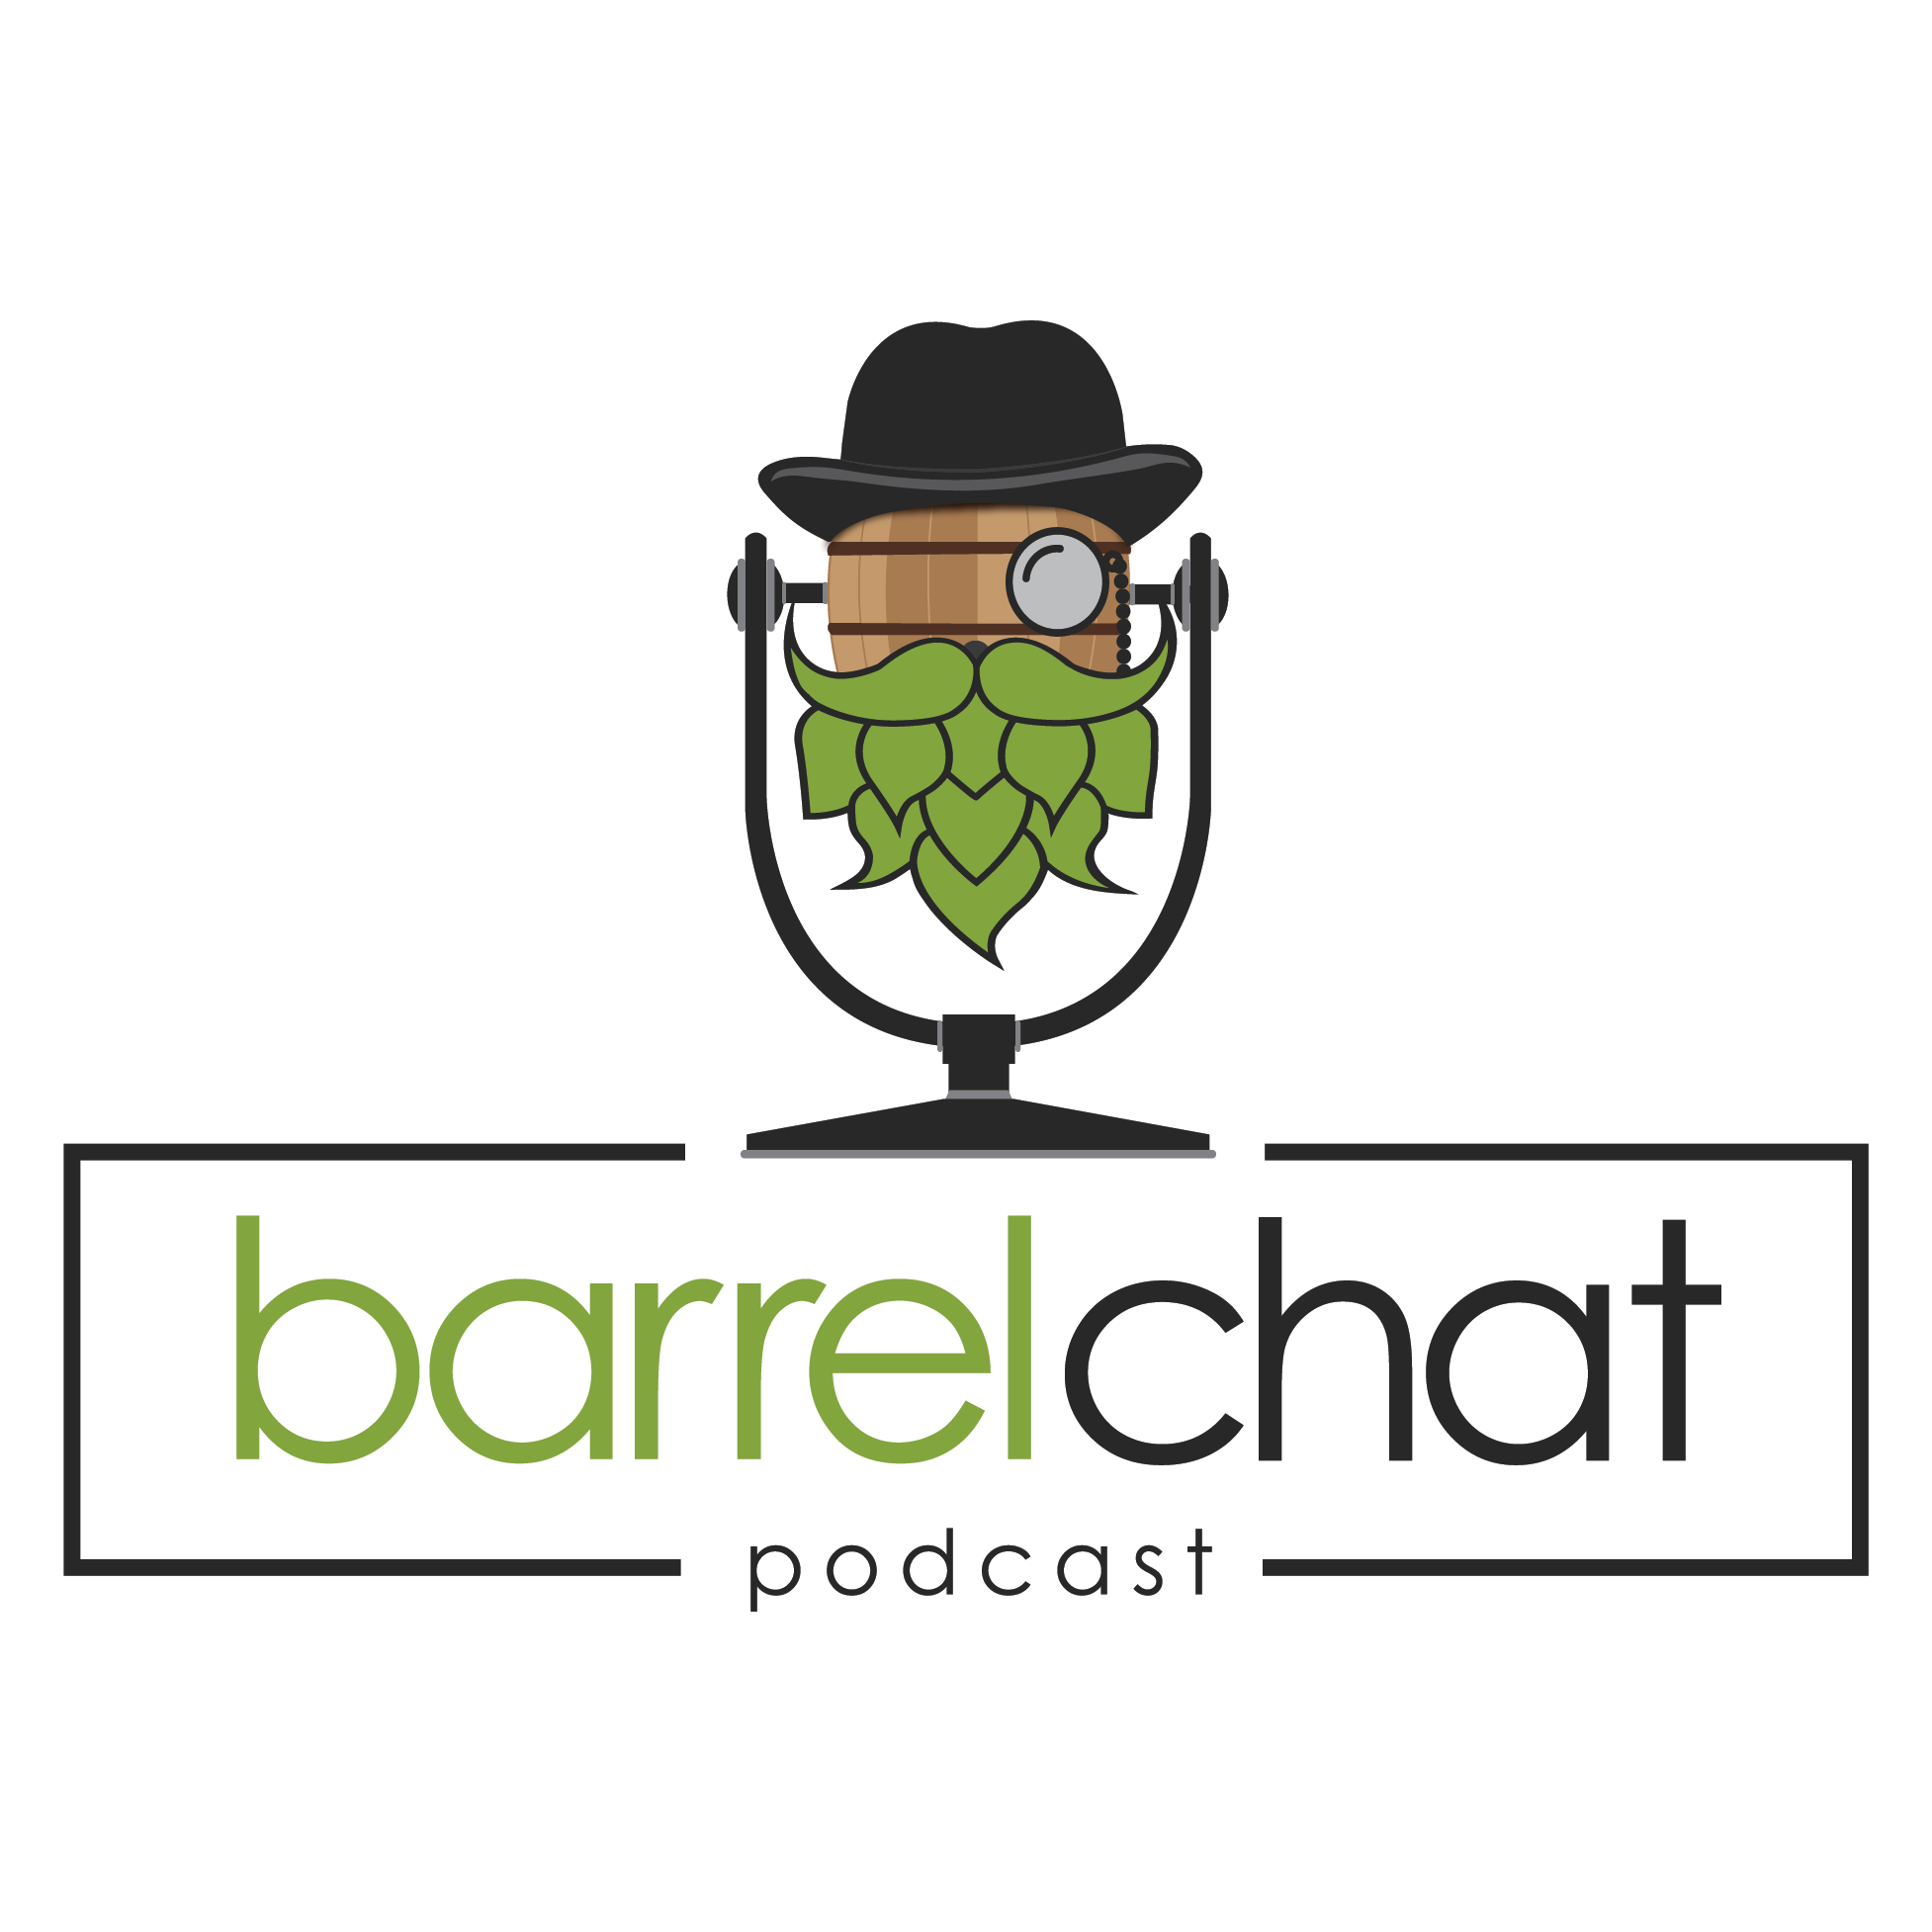 Barrel Chat 2.0